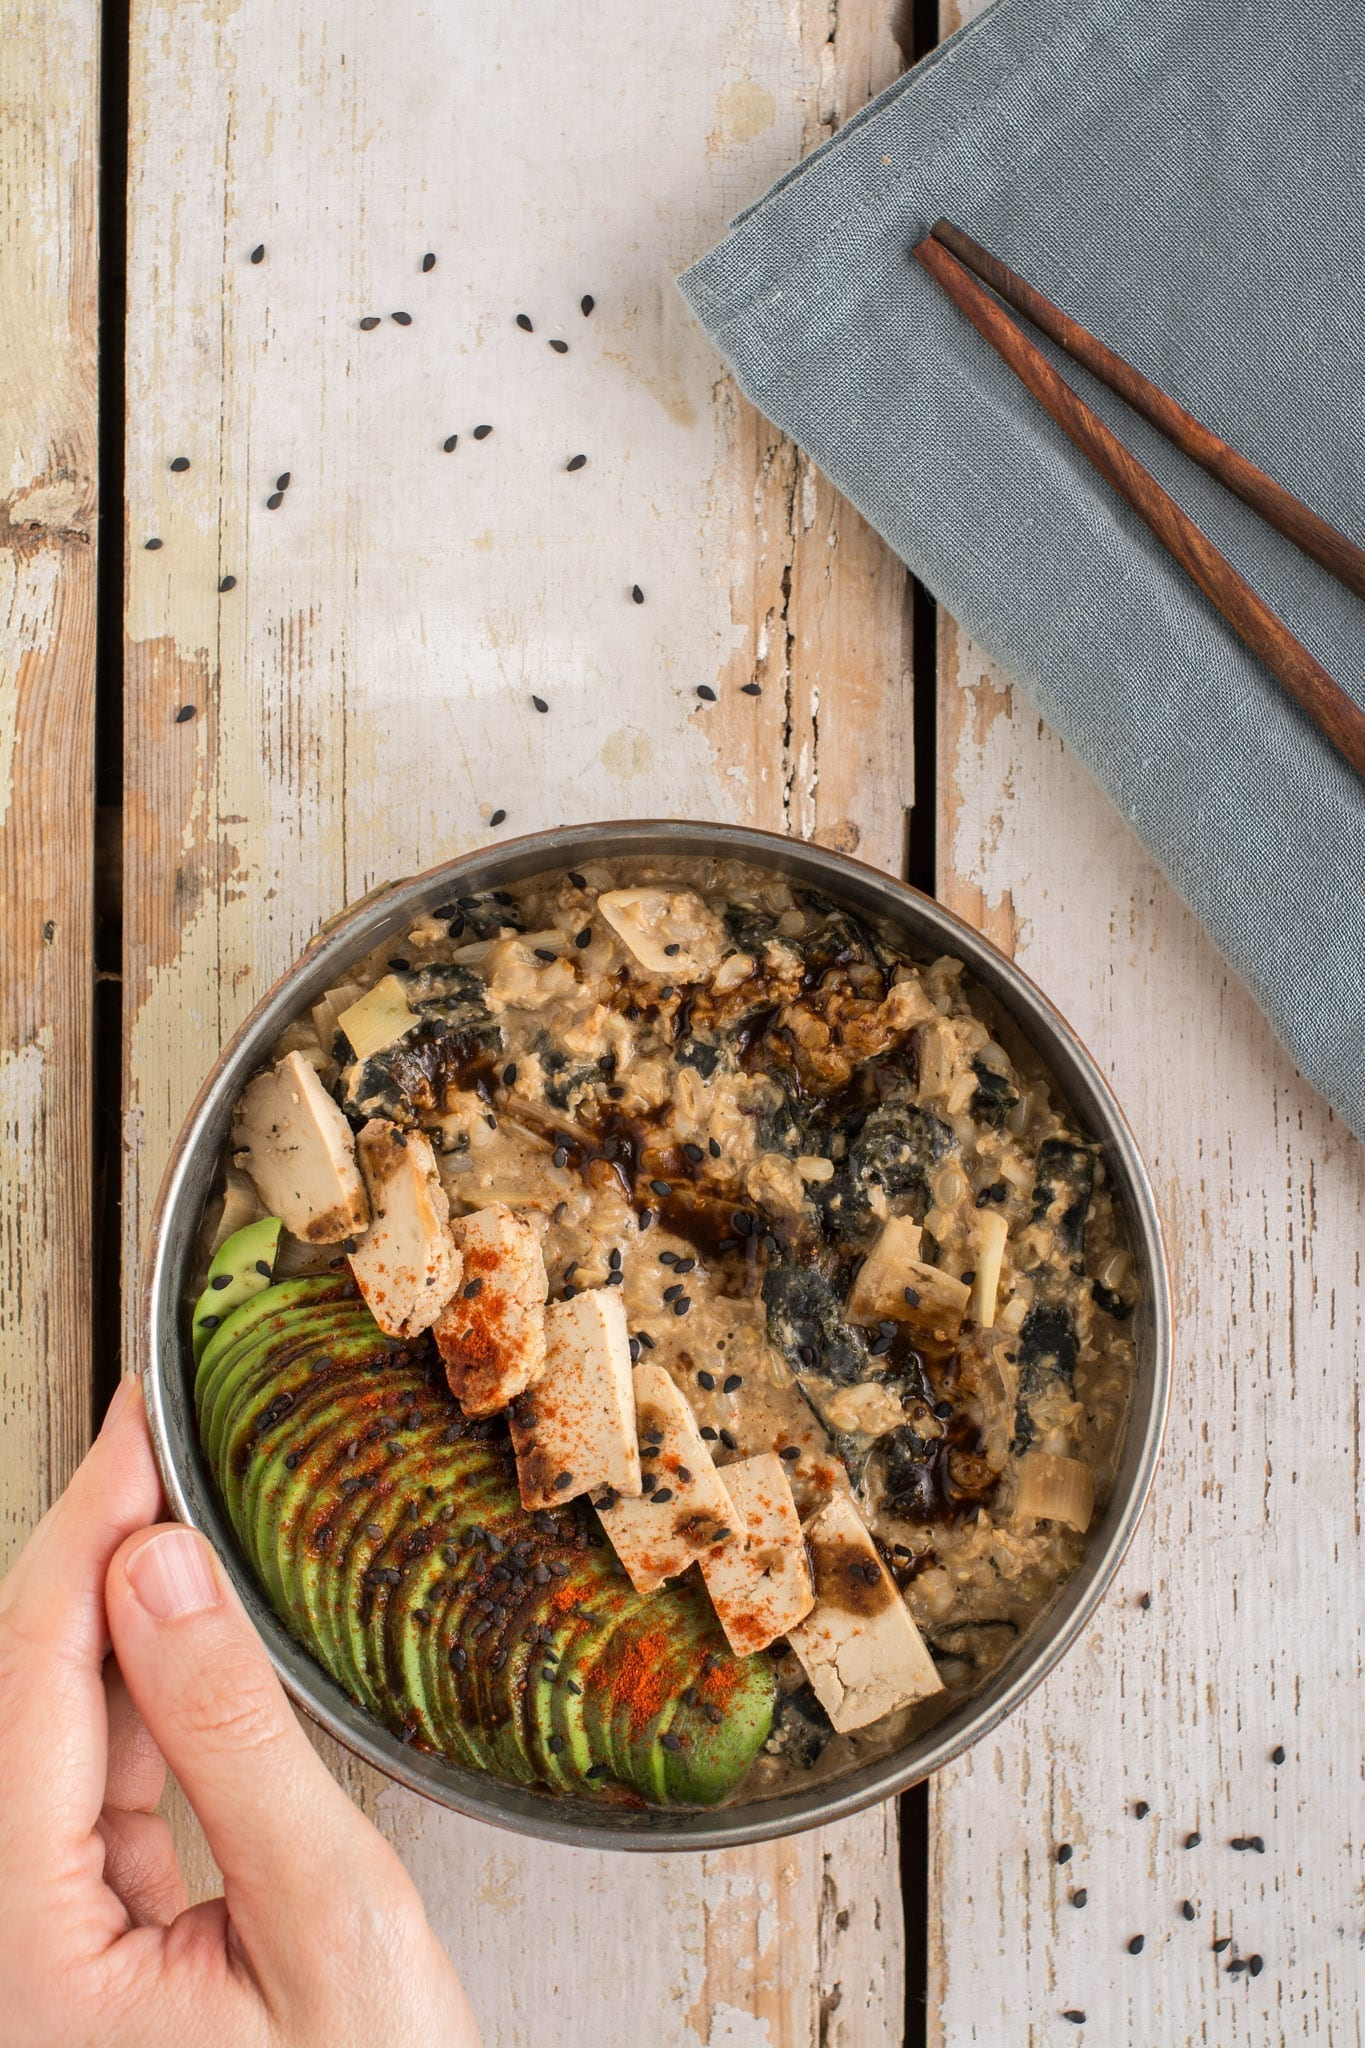 Try this vegan version of Japanese breakfast rice porridge with some healthy tweaks. It's like eating sushi for breakfast, but in the form of comforting porridge bowl.